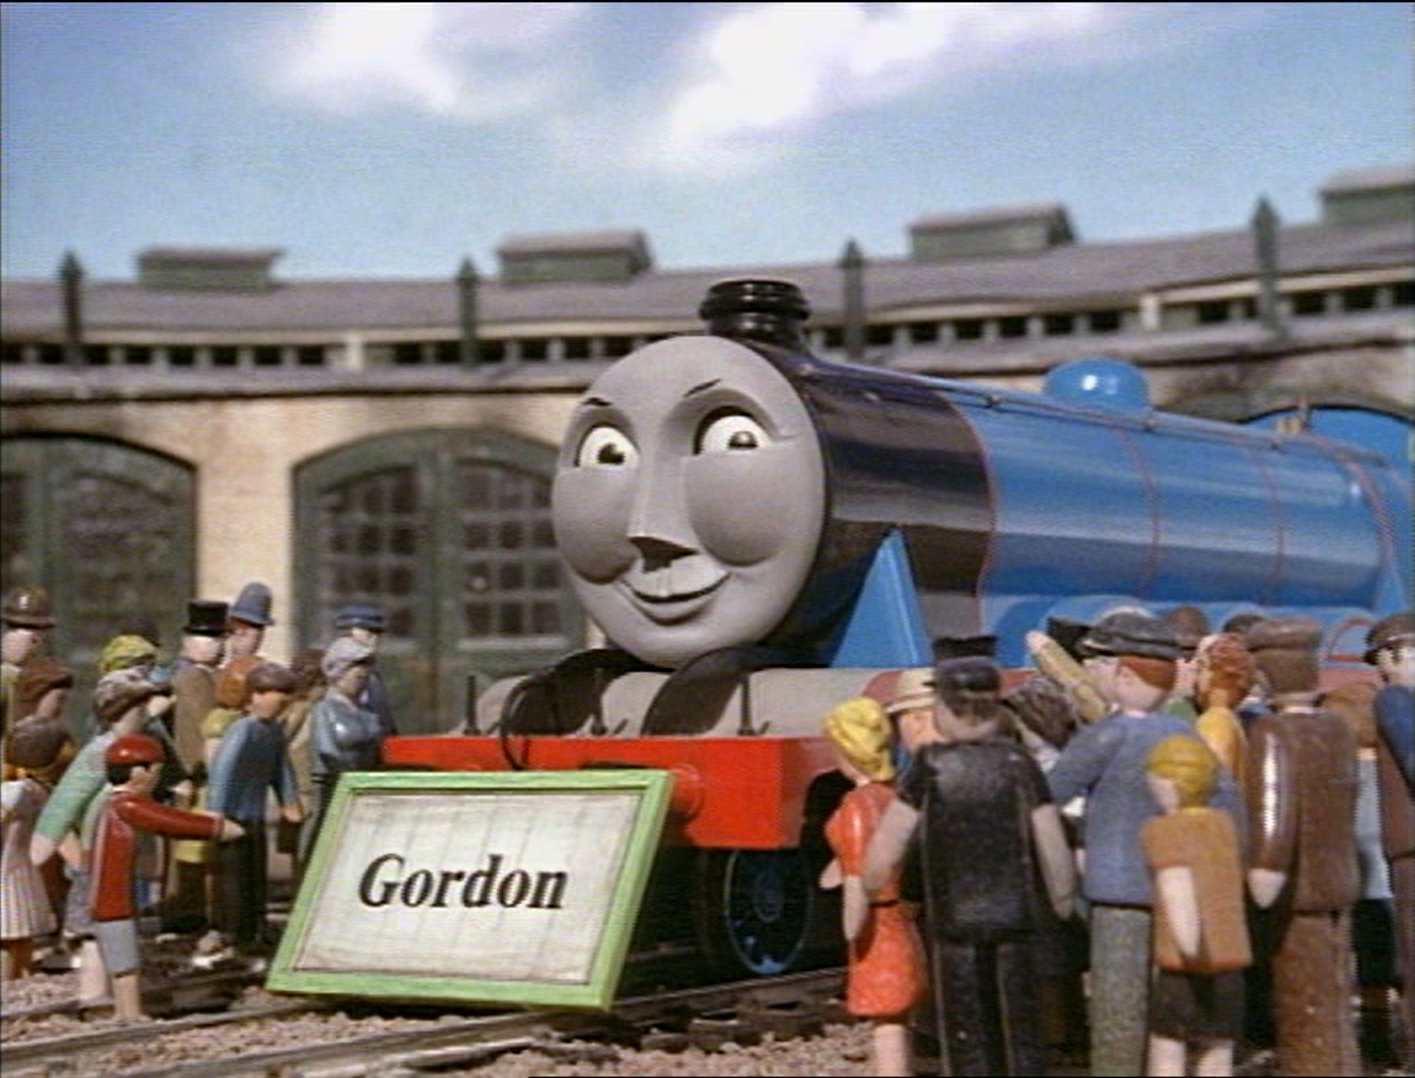 File:Gordonwithnameboard.png